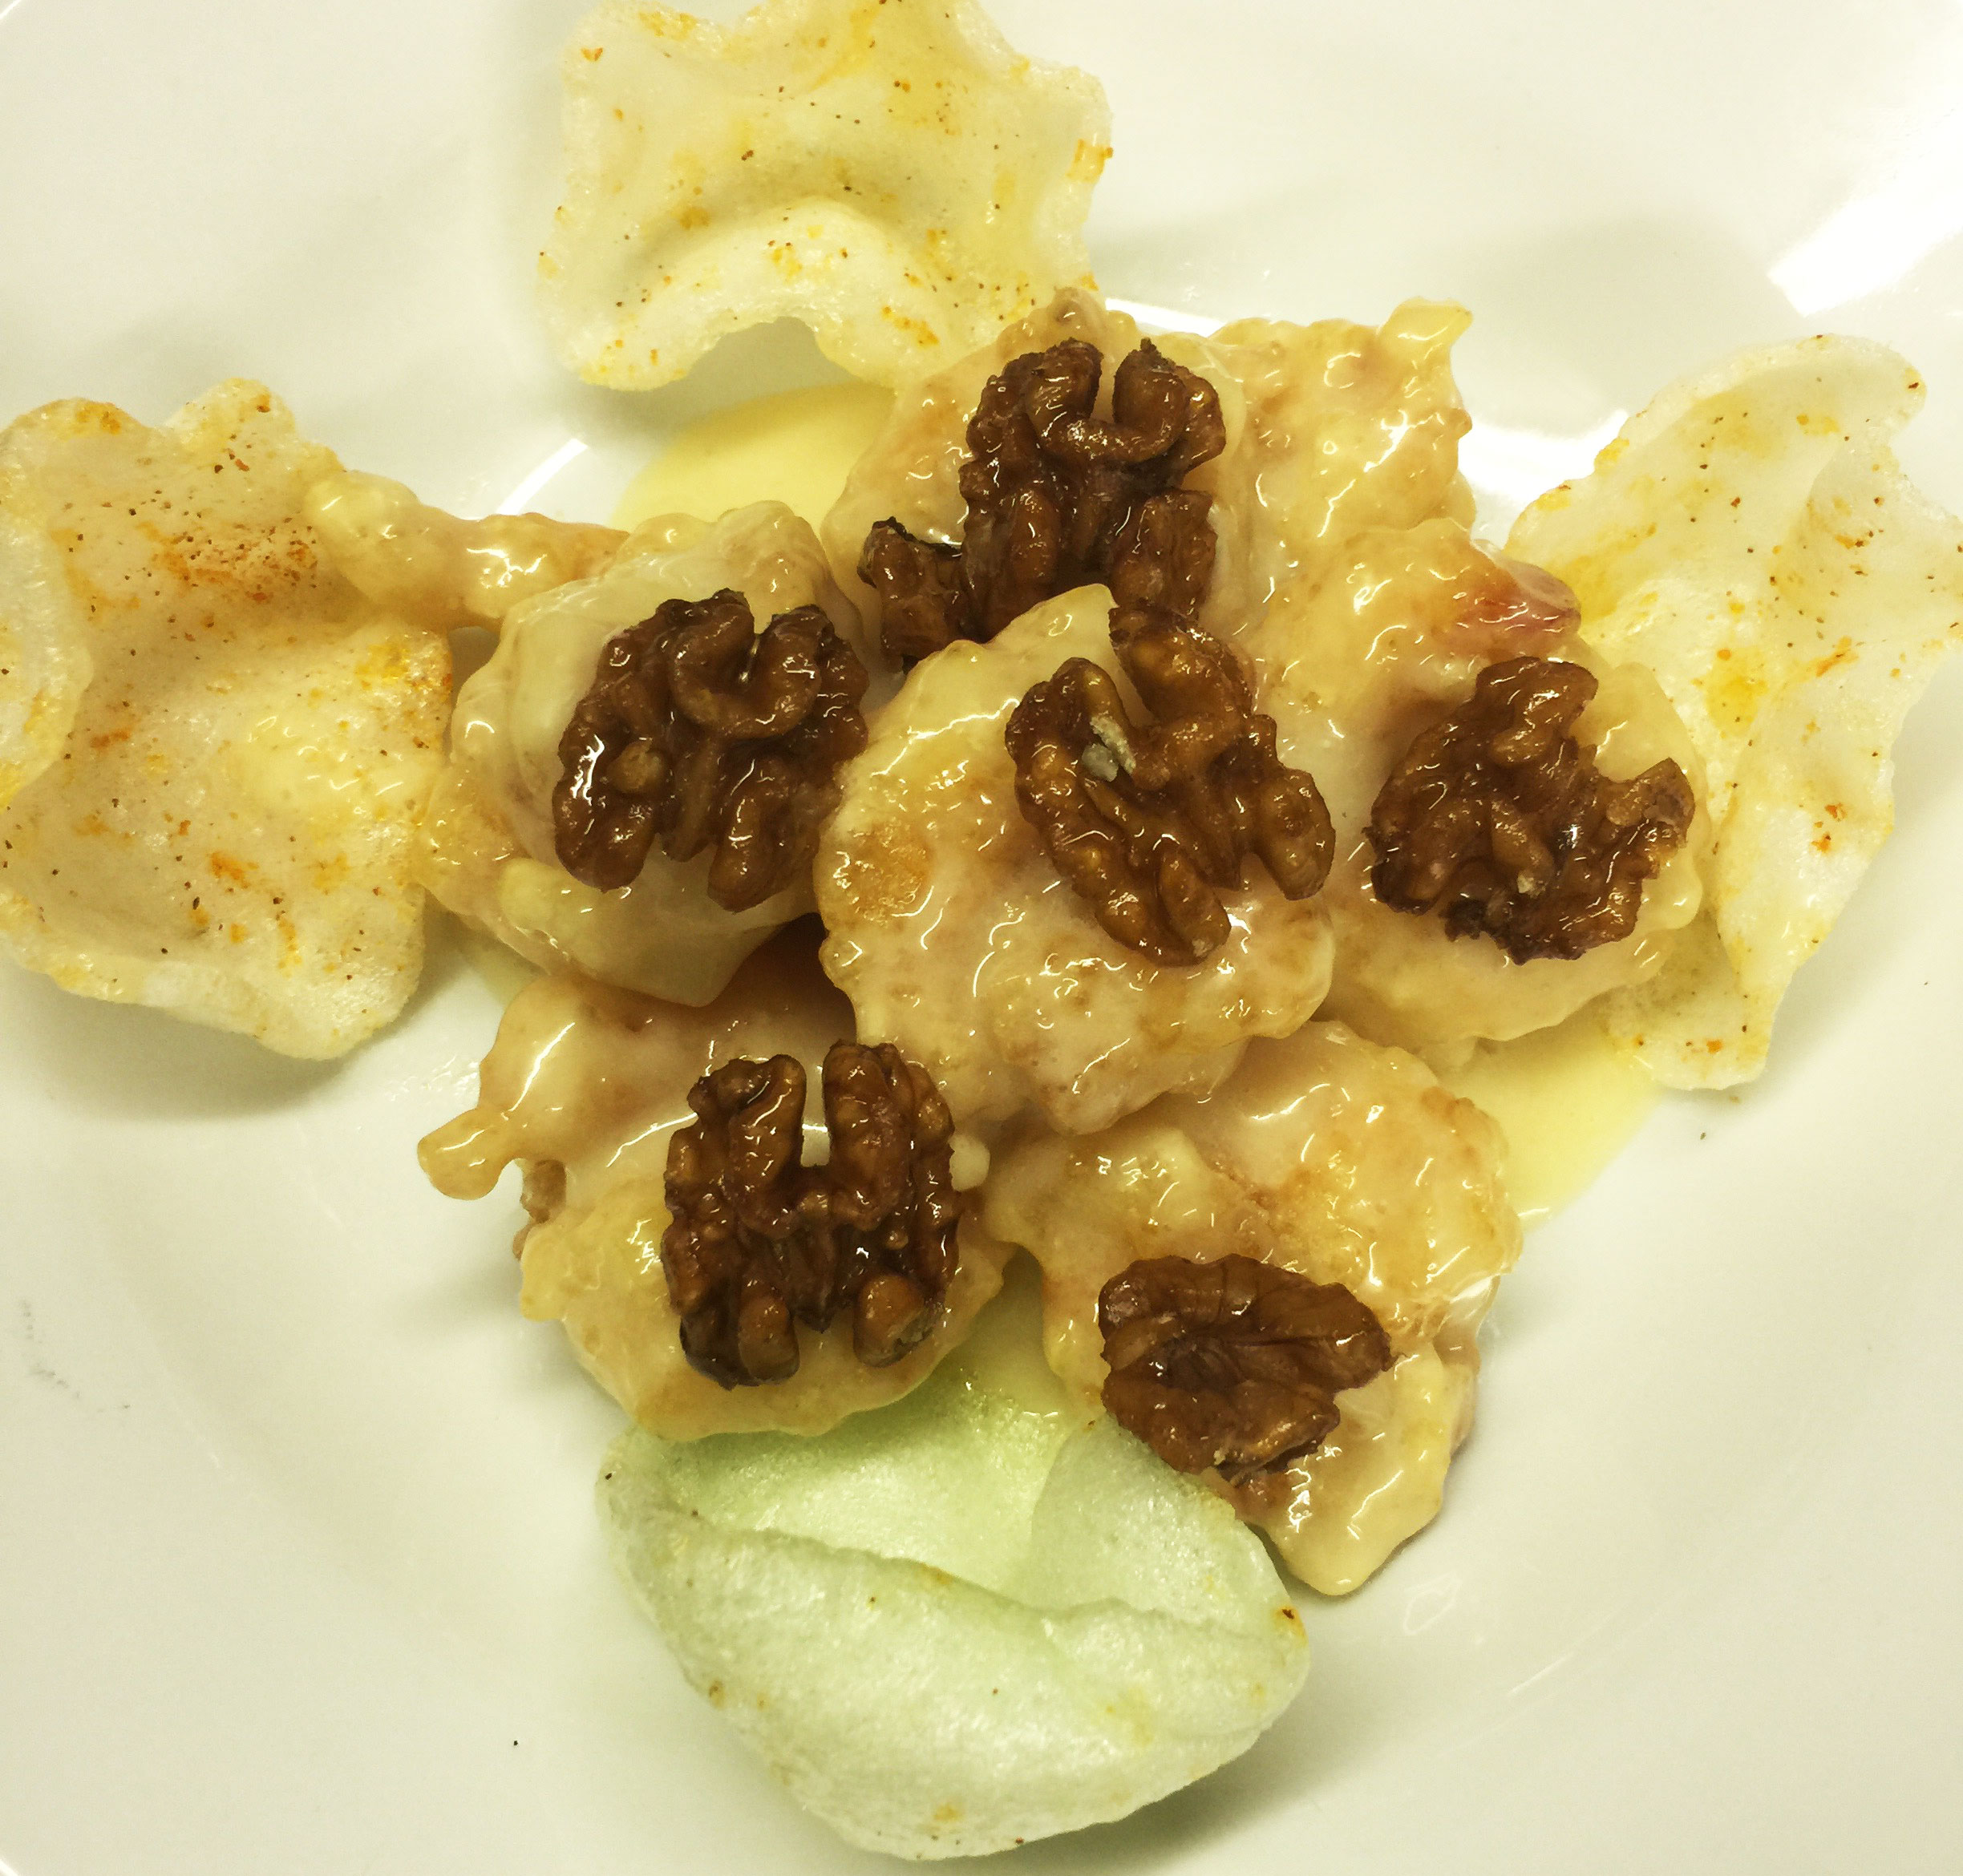 169. Walnut Shrimp Image